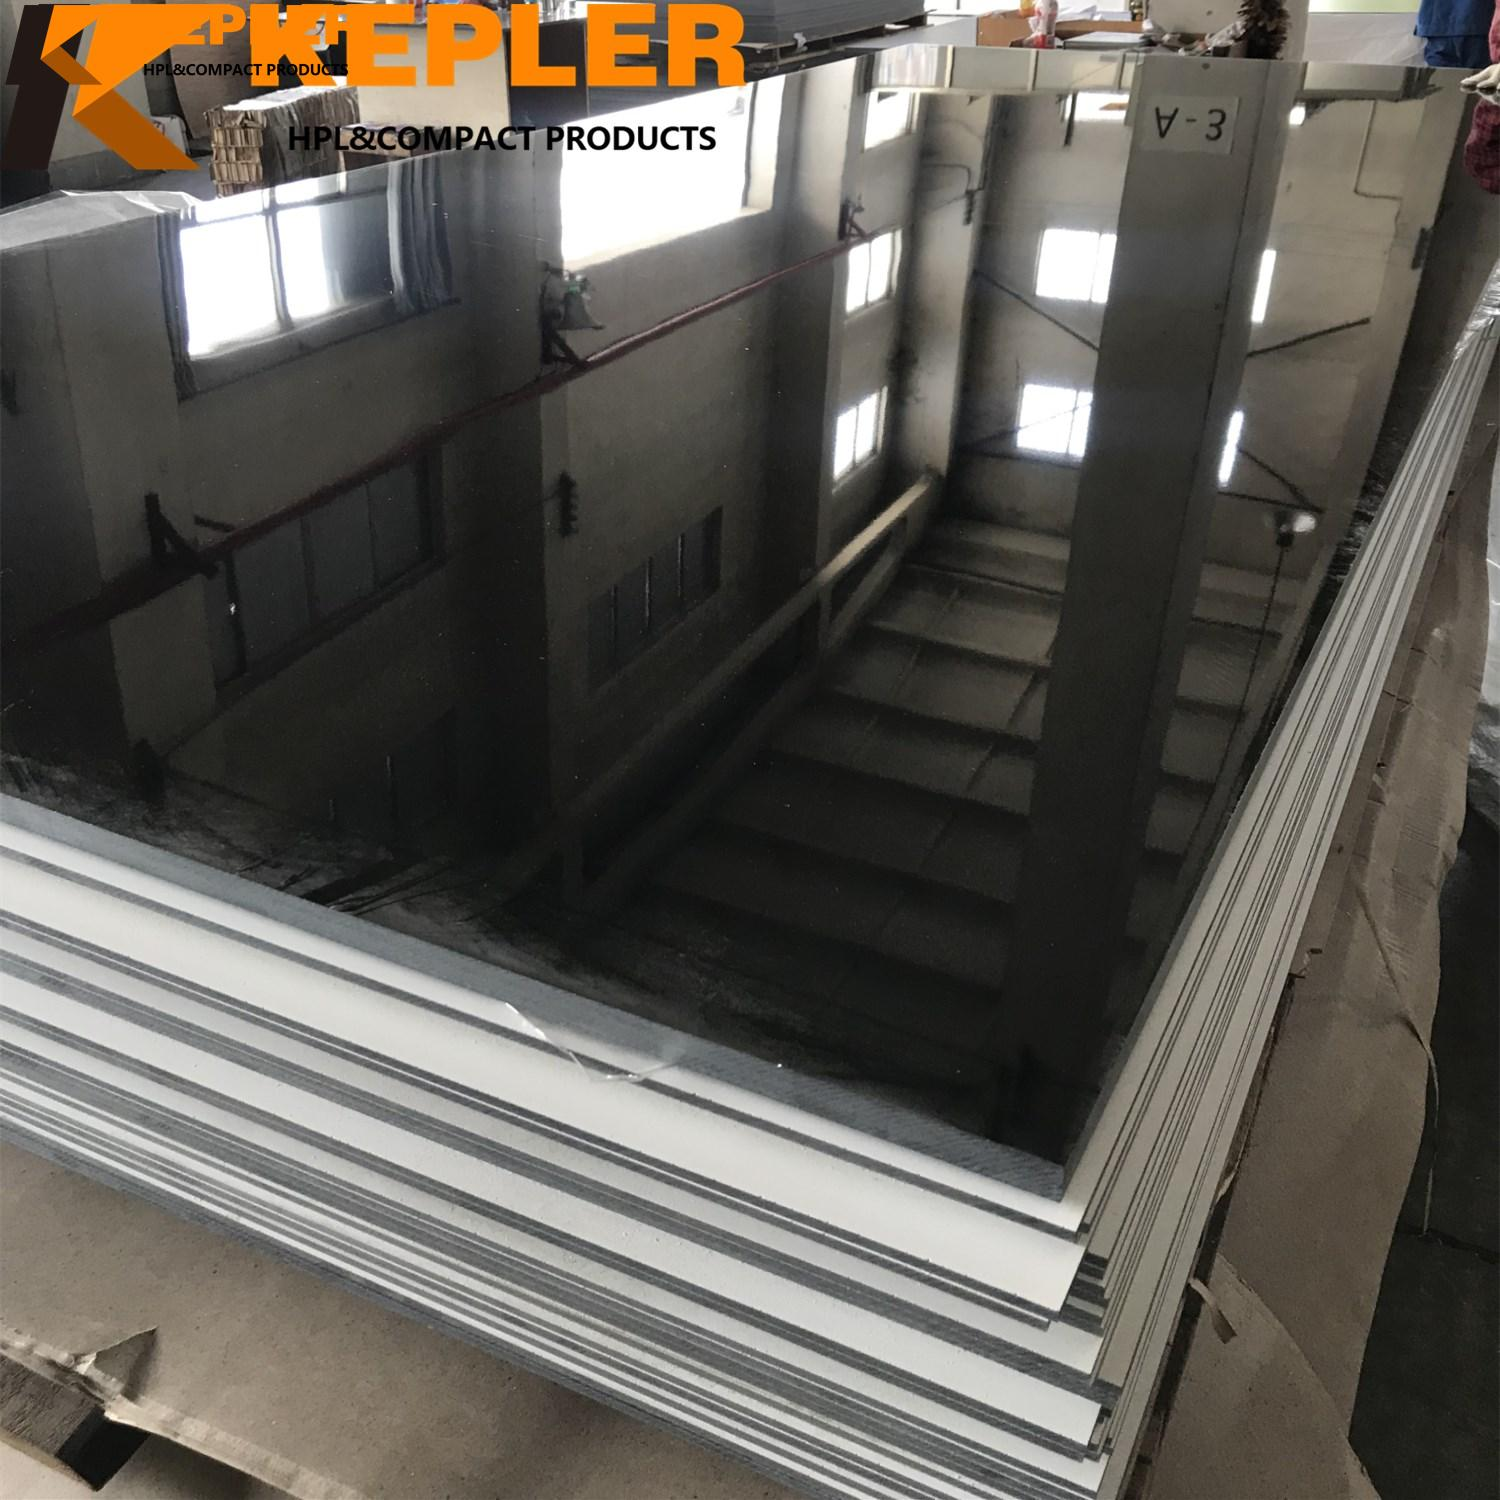 Kepler phenolic compact panel supplier